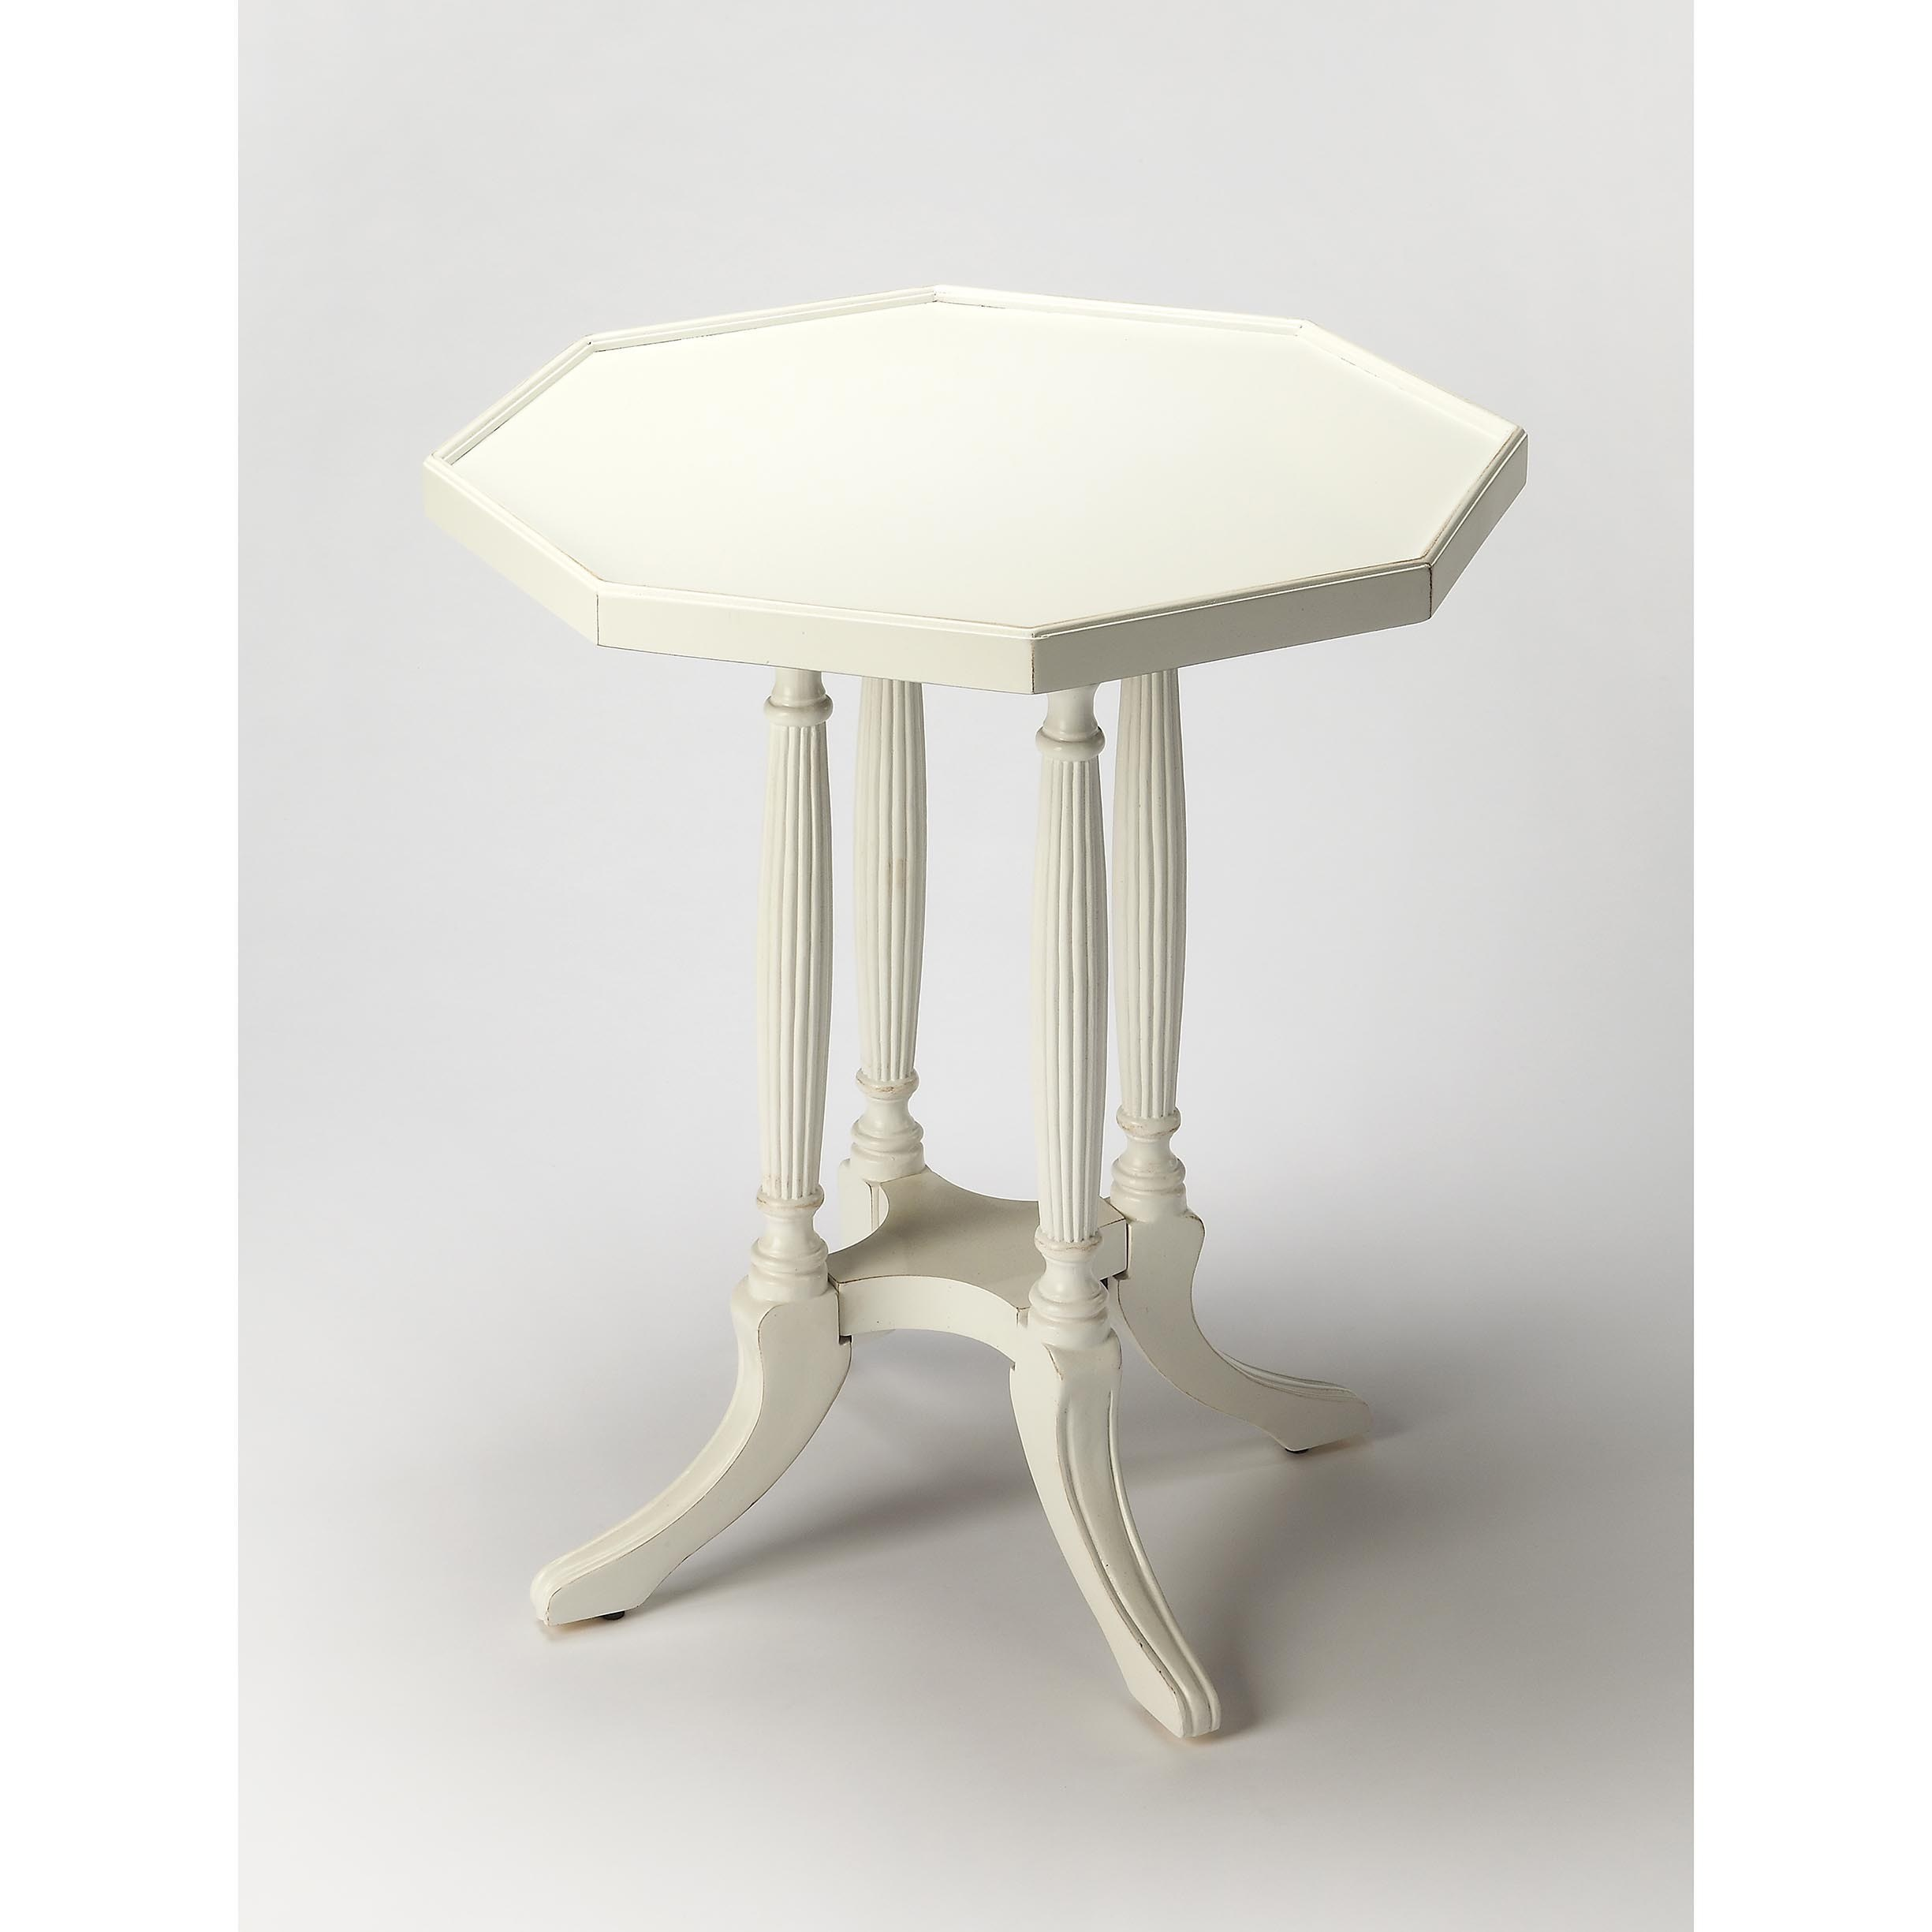 handmade butler adolphus cottage white wood octagonal end table accent free shipping today marble dinner set teak outdoor cream colored nightstand small decorative tables